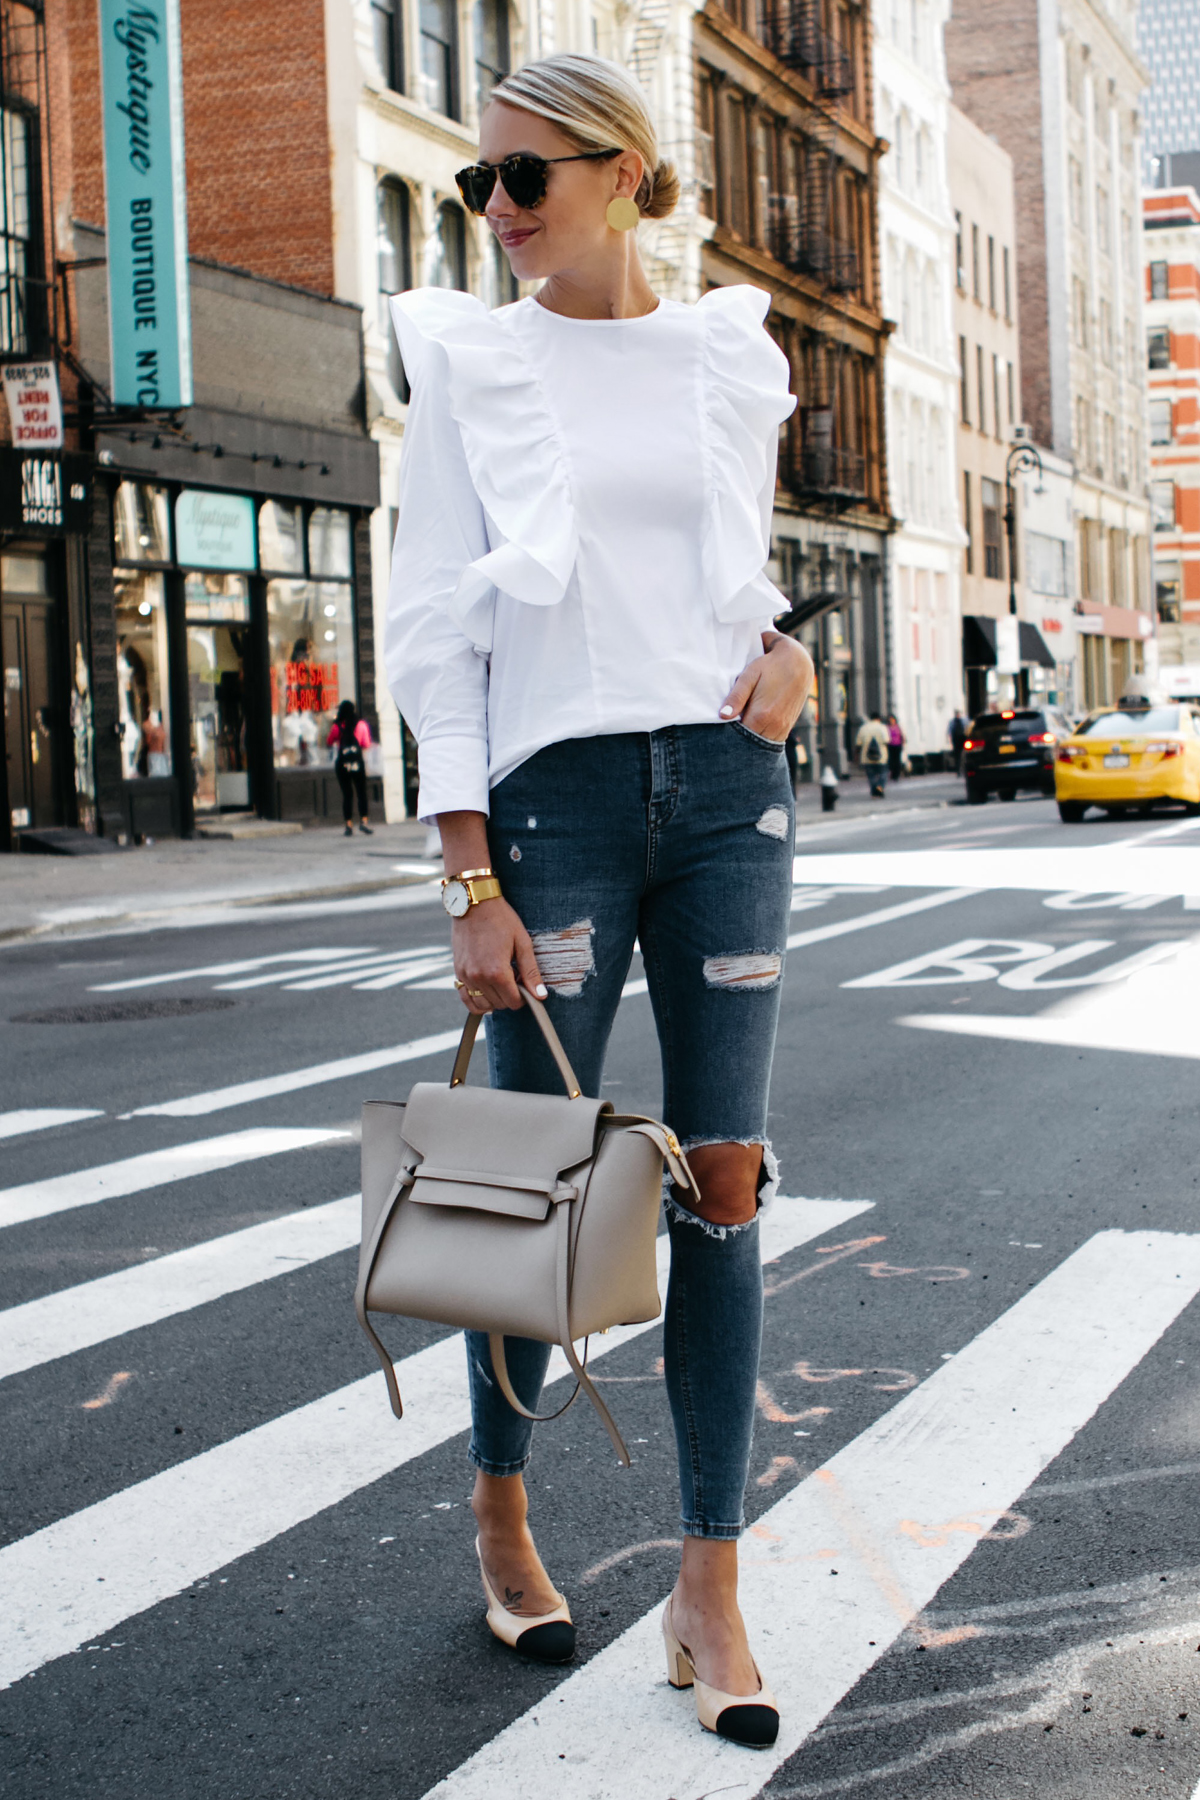 How To Wear White Ruffle Shirt